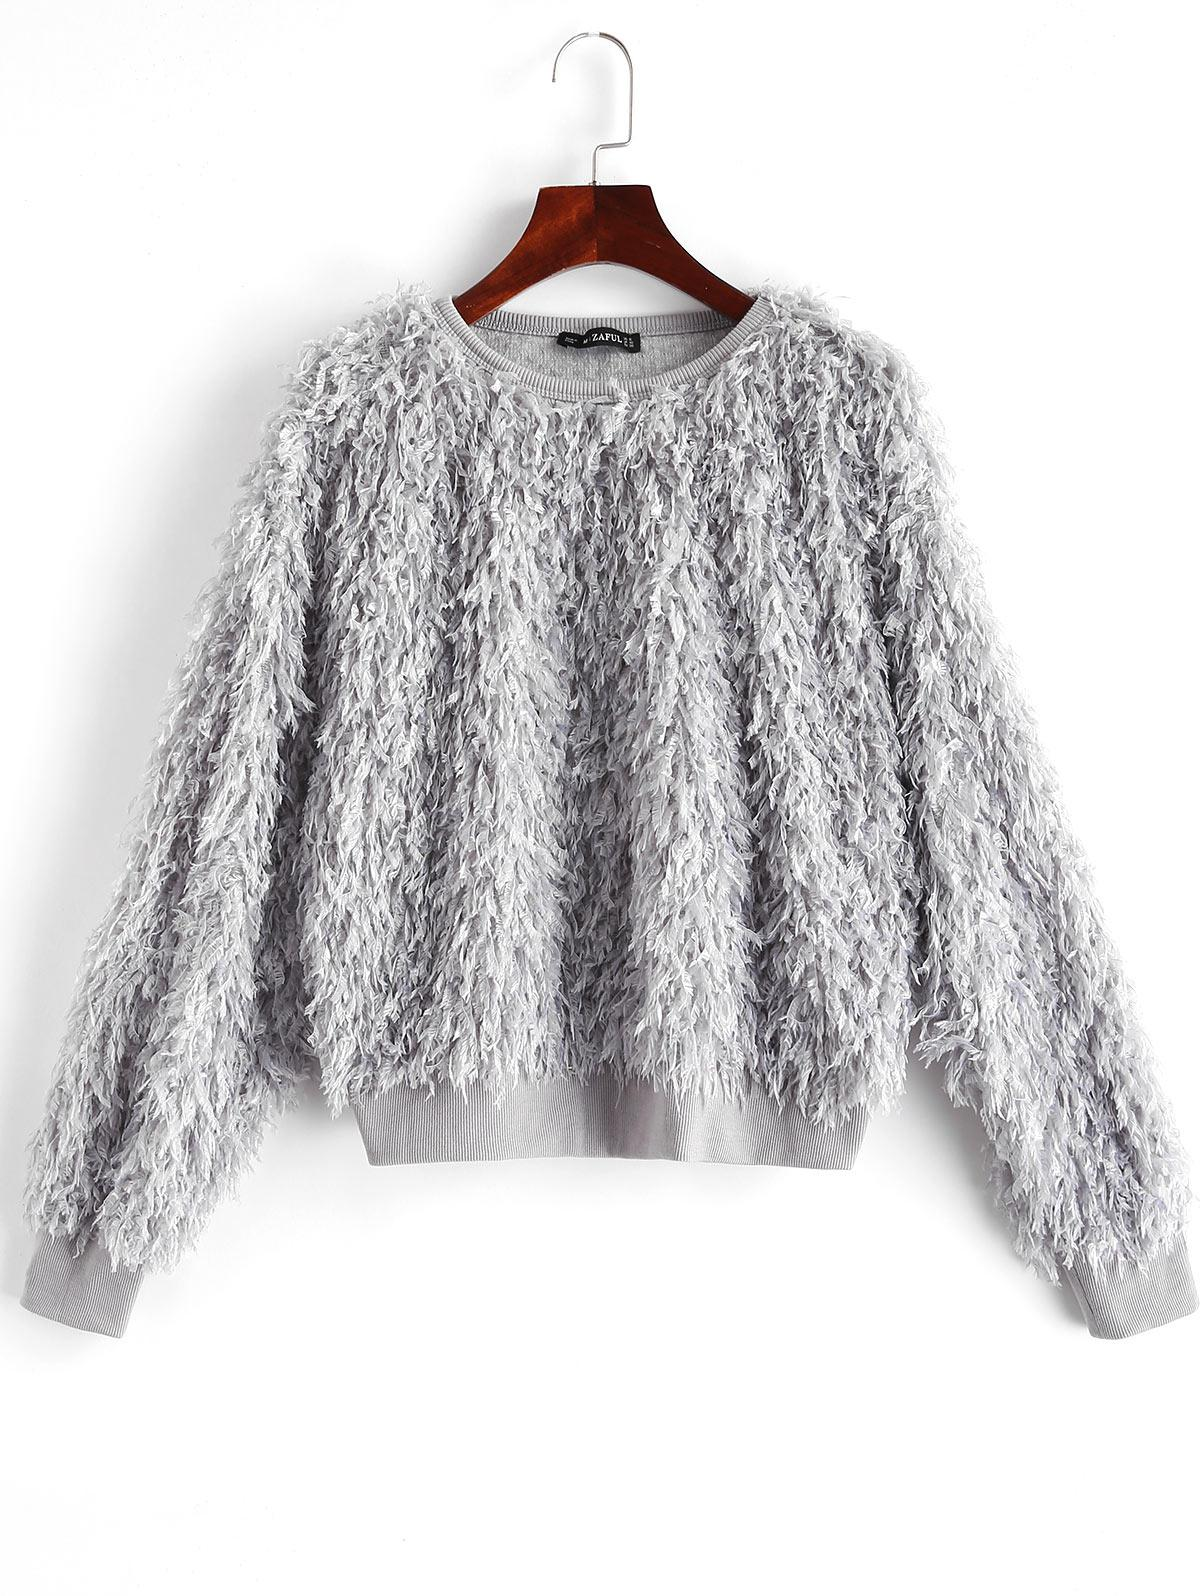 ZAFUL Solid Color Drop Shoulder Fuzzy Sweatshirt